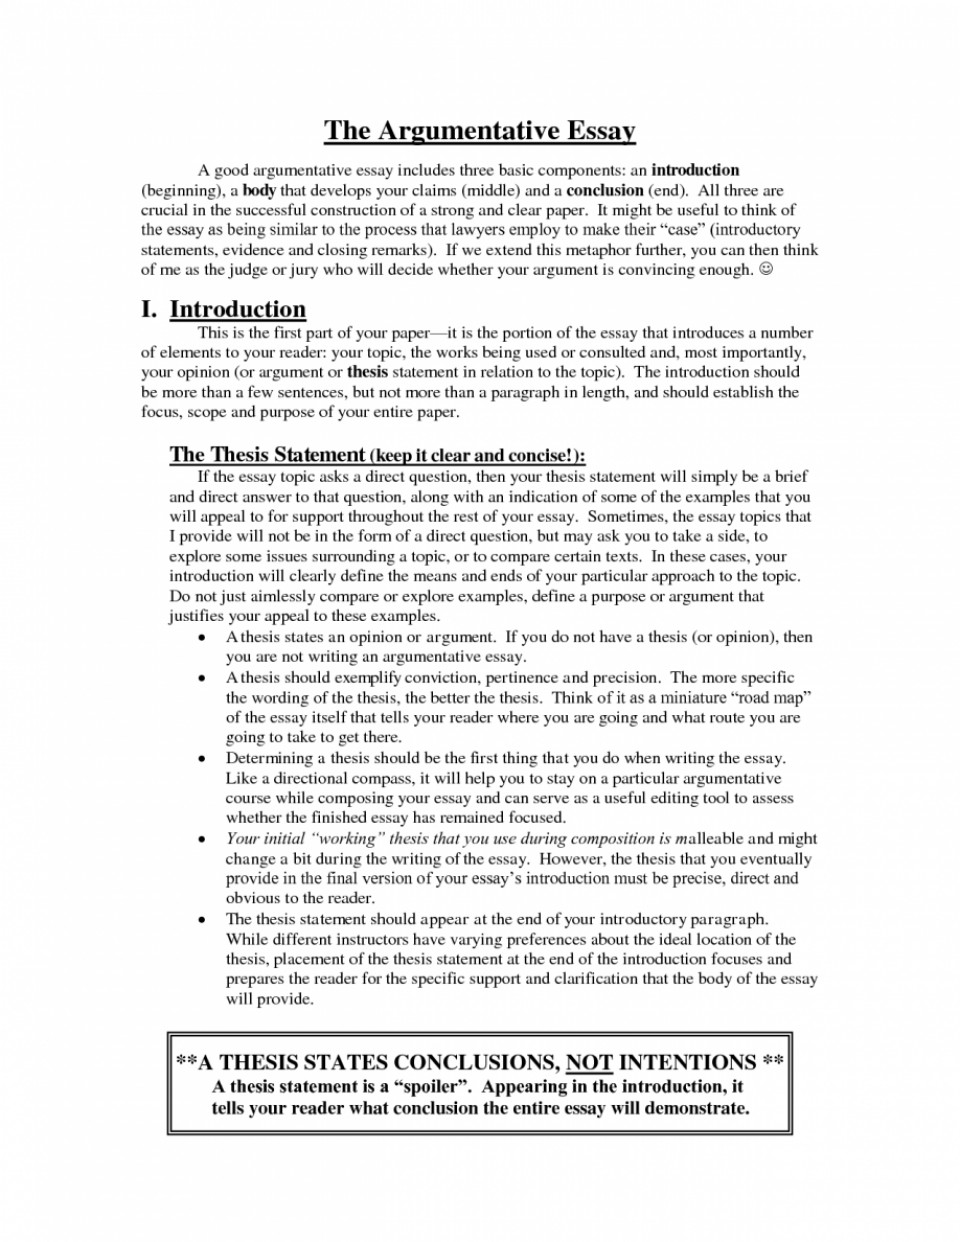 005 Argumentative Essay Introduction Examples Example Help Writing An College Good Persuasive Paragraph Image Ga Samples Personal Awesome Middle School Format 960